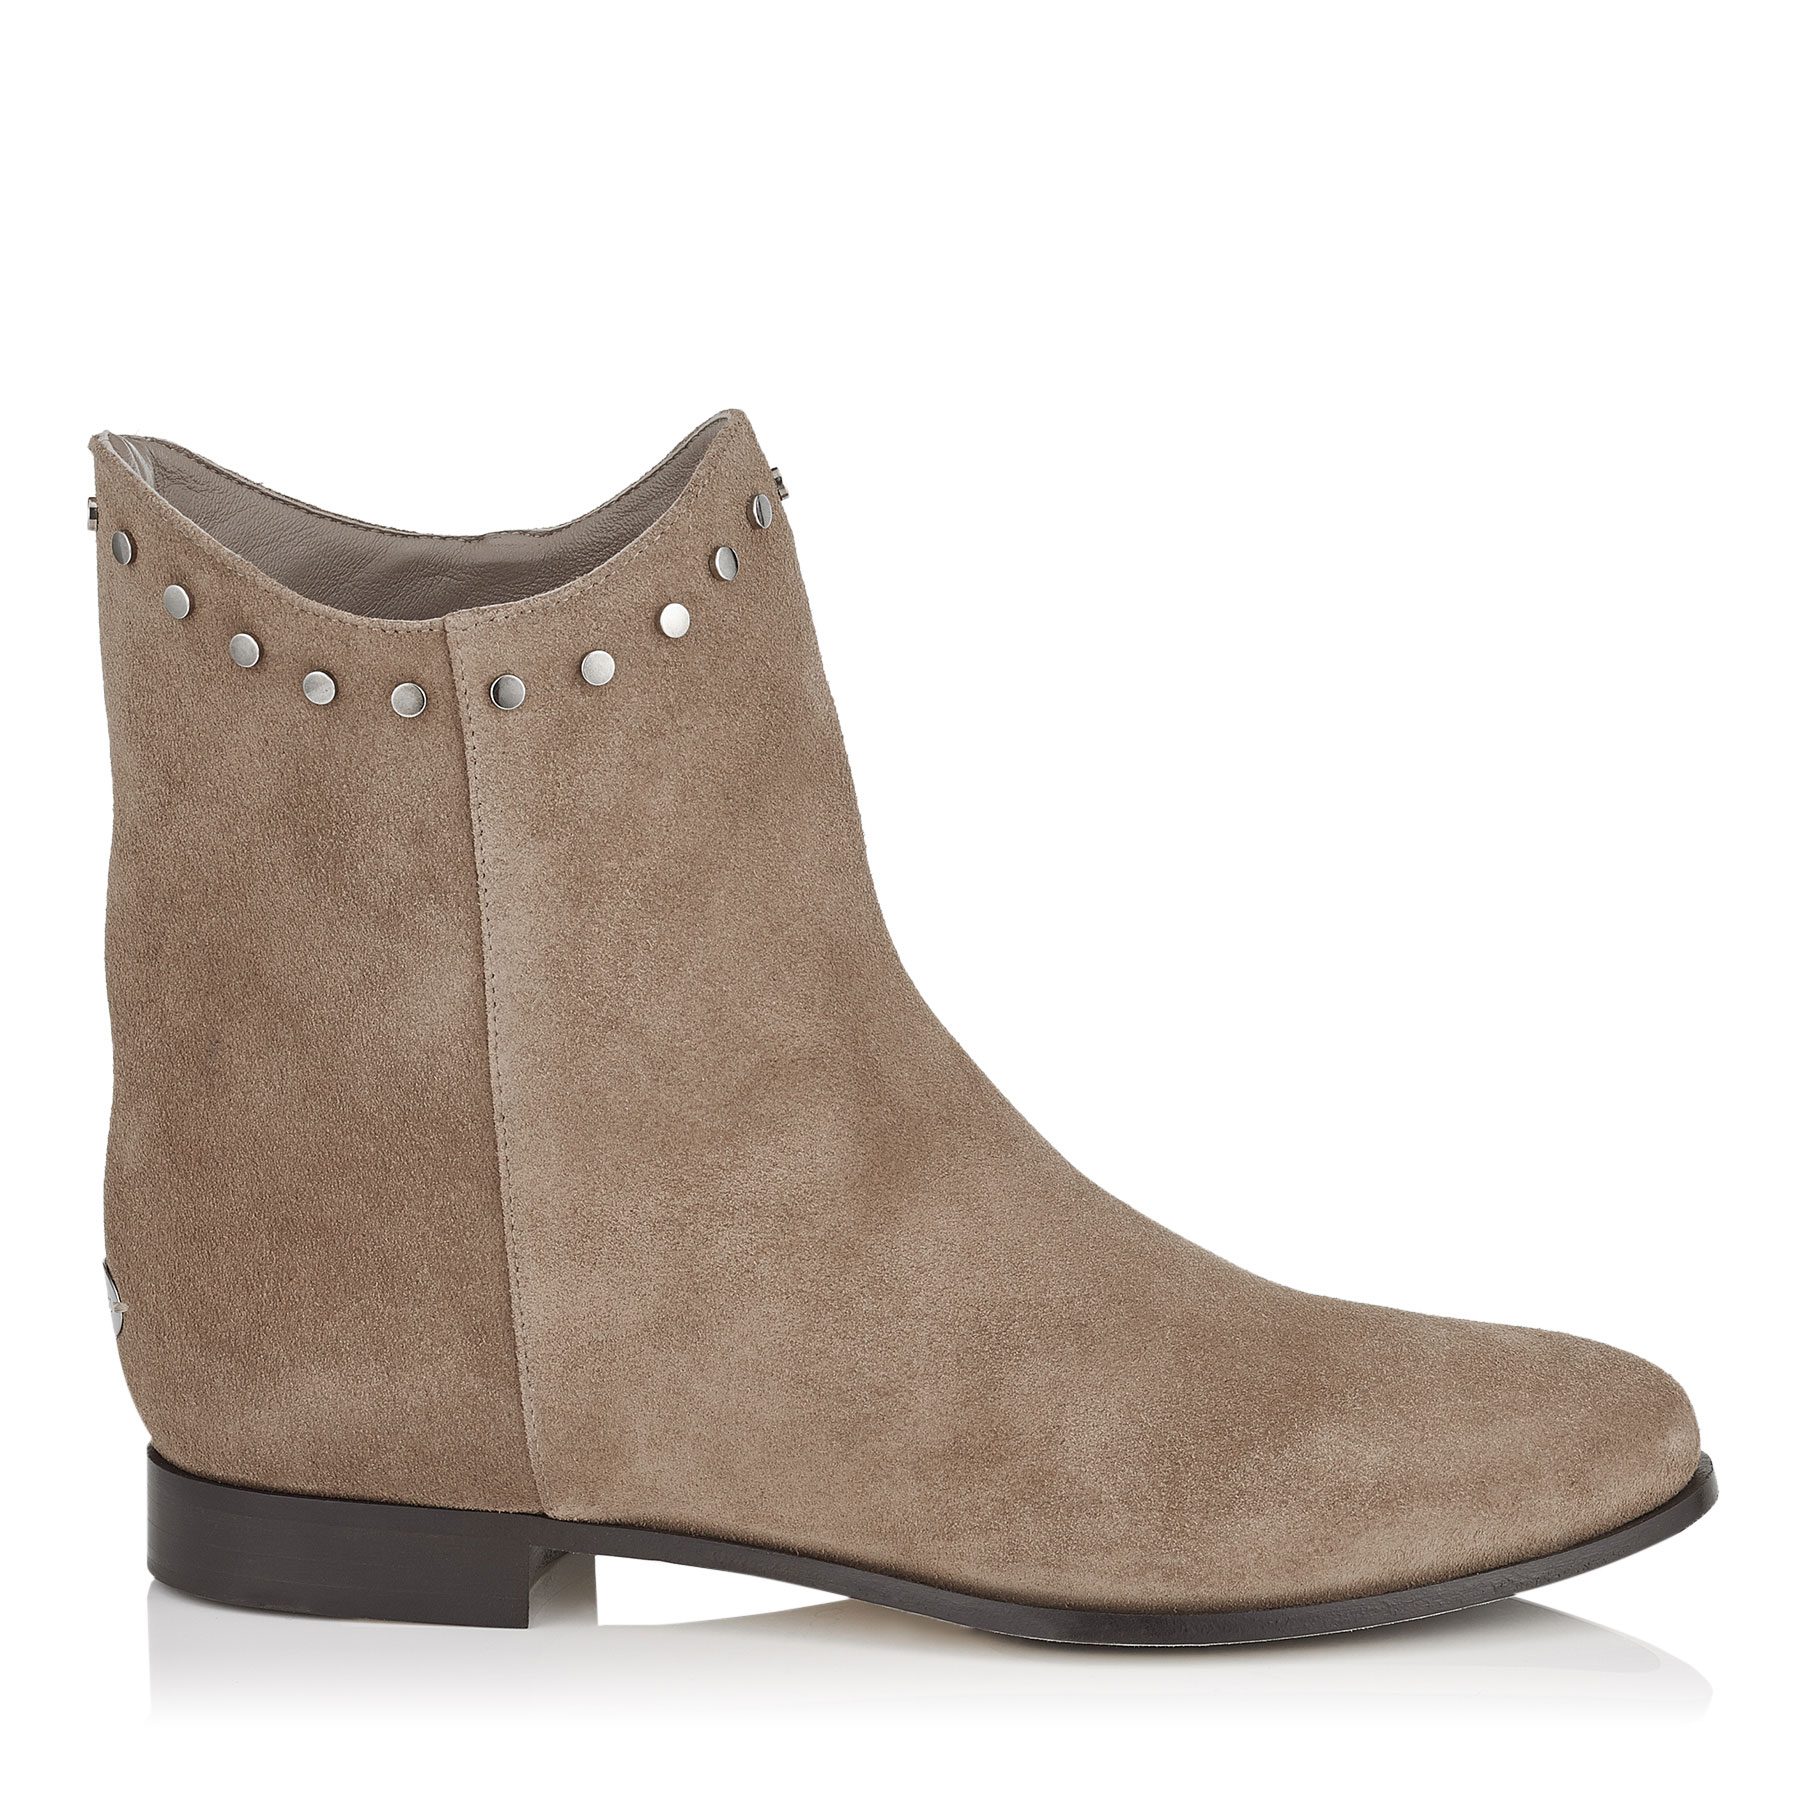 MARCO FLAT Light Mocha Suede Ankle Boots by Jimmy Choo